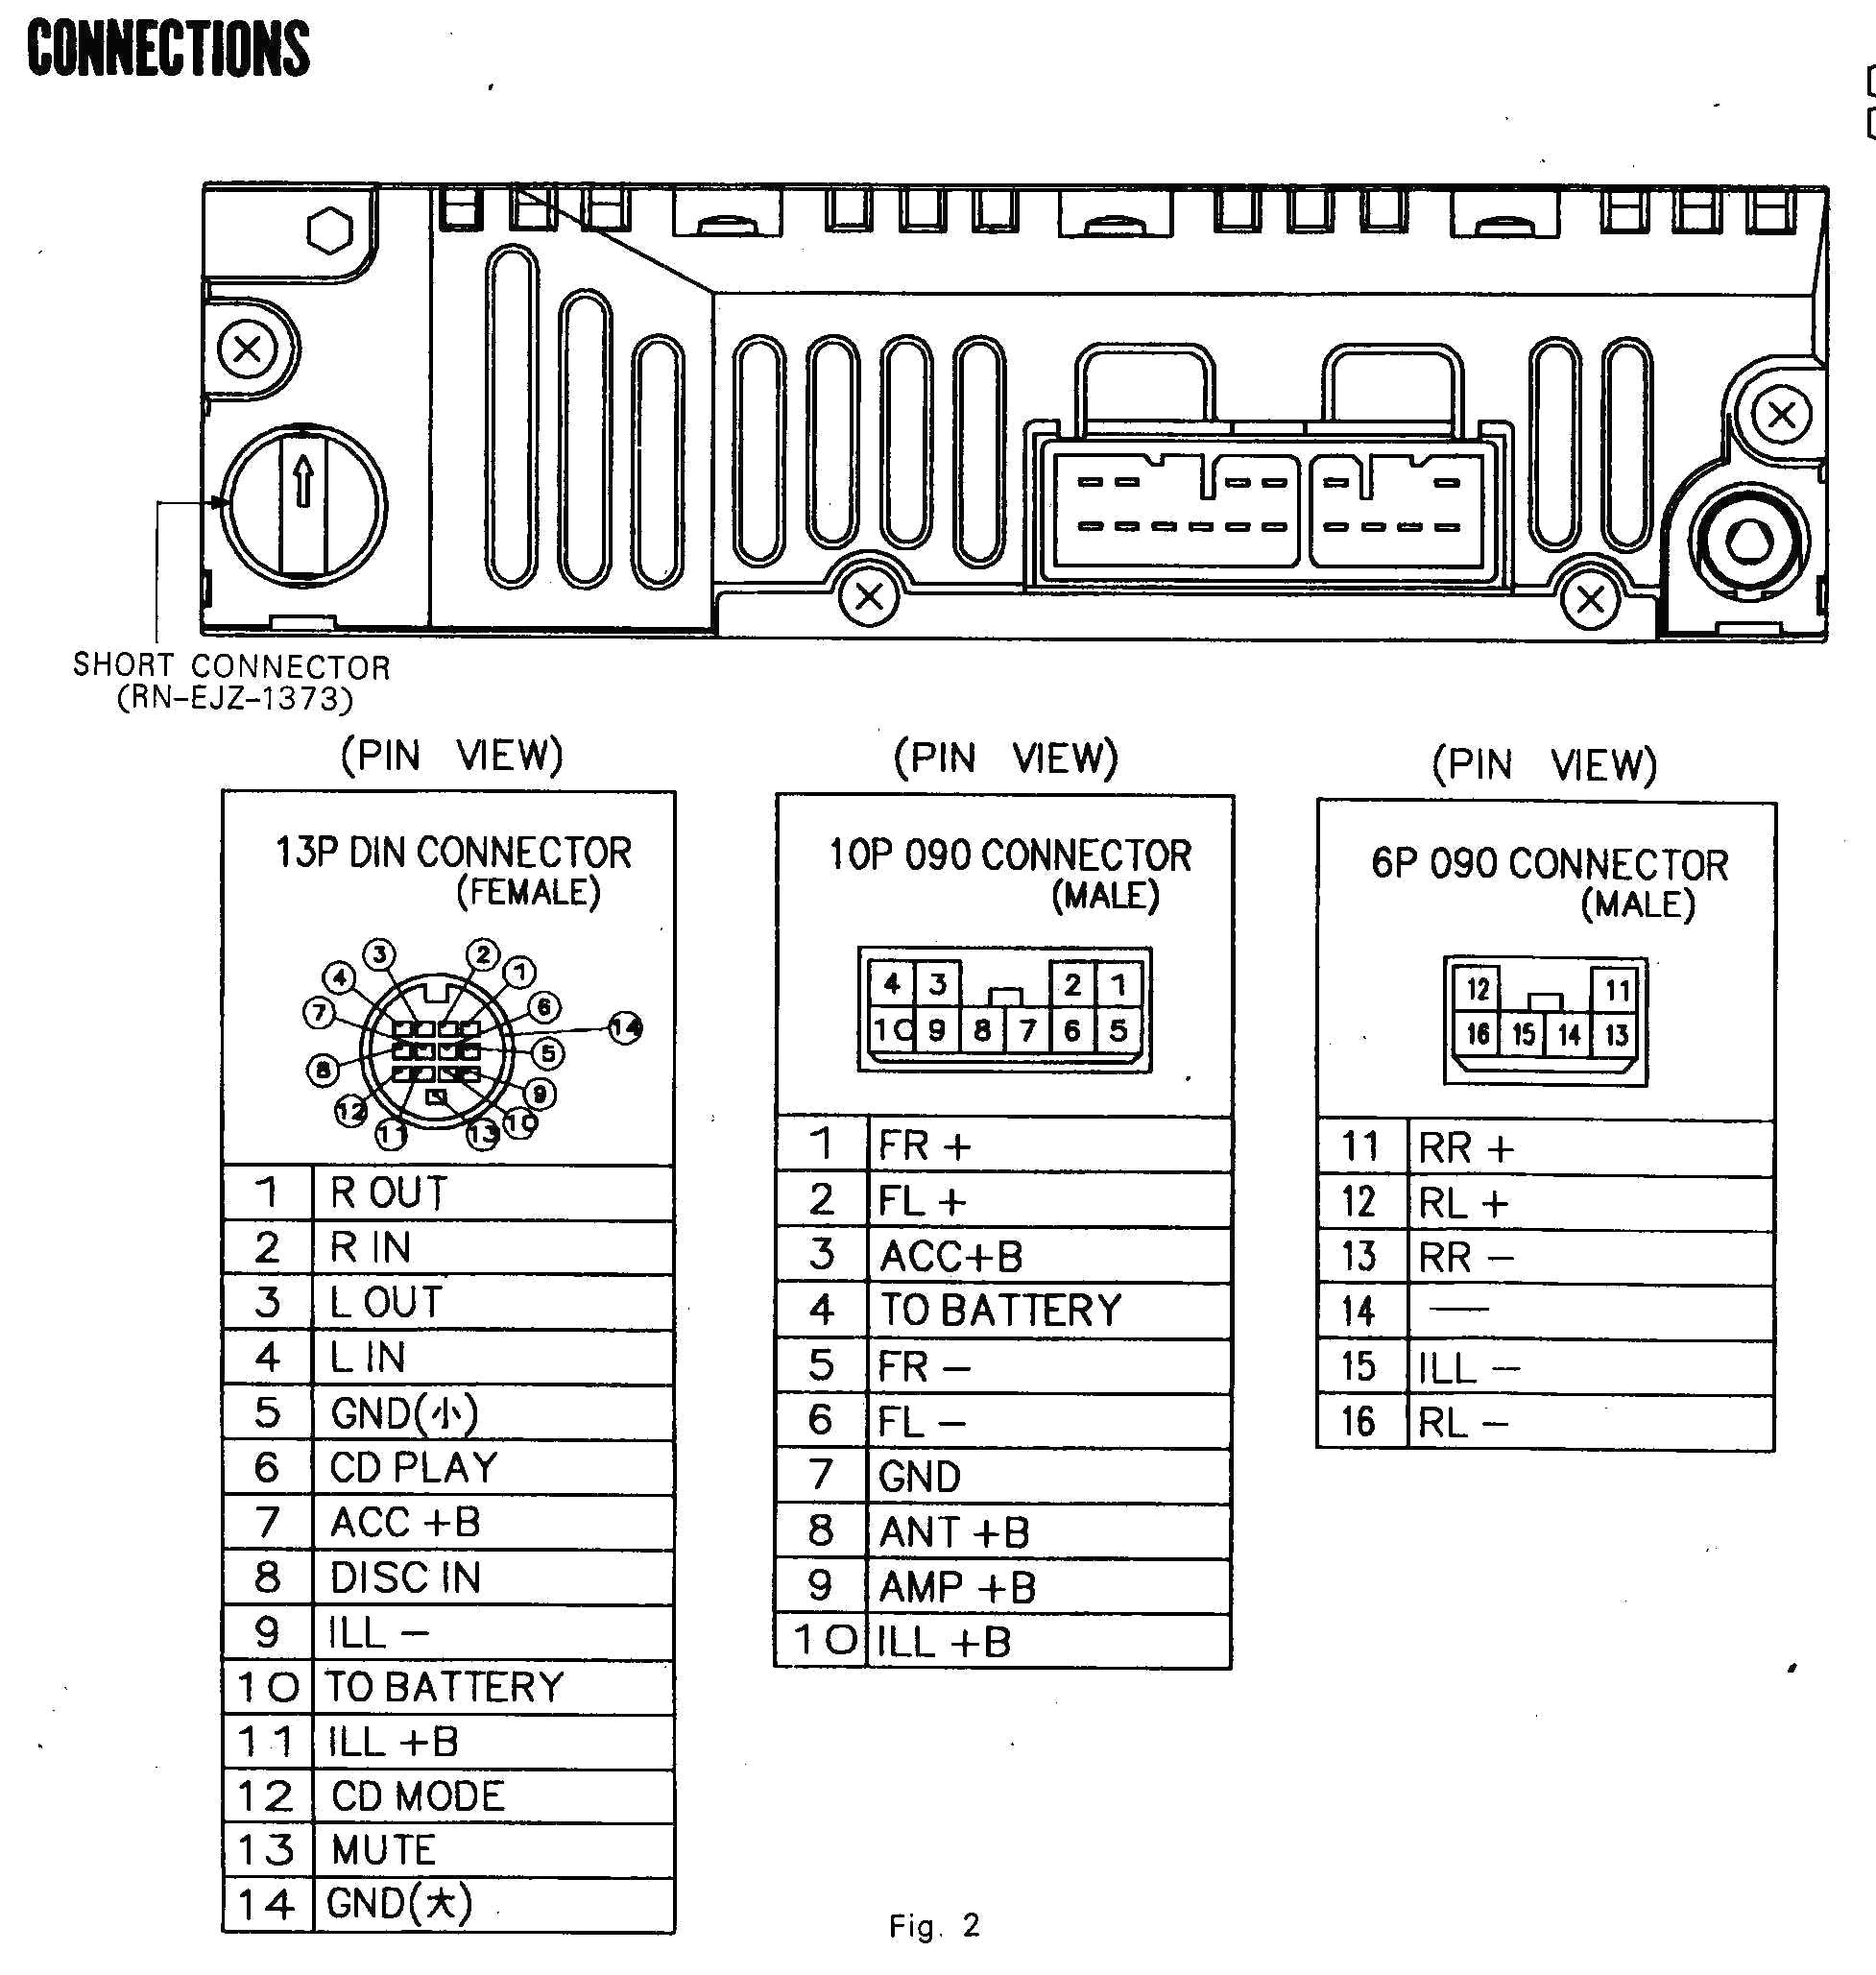 Factory Car Stereo Wiring Diagrams Car Stereo Wiring Diagram Knowing Factory Diagrams New sony Radio Of Factory Car Stereo Wiring Diagrams